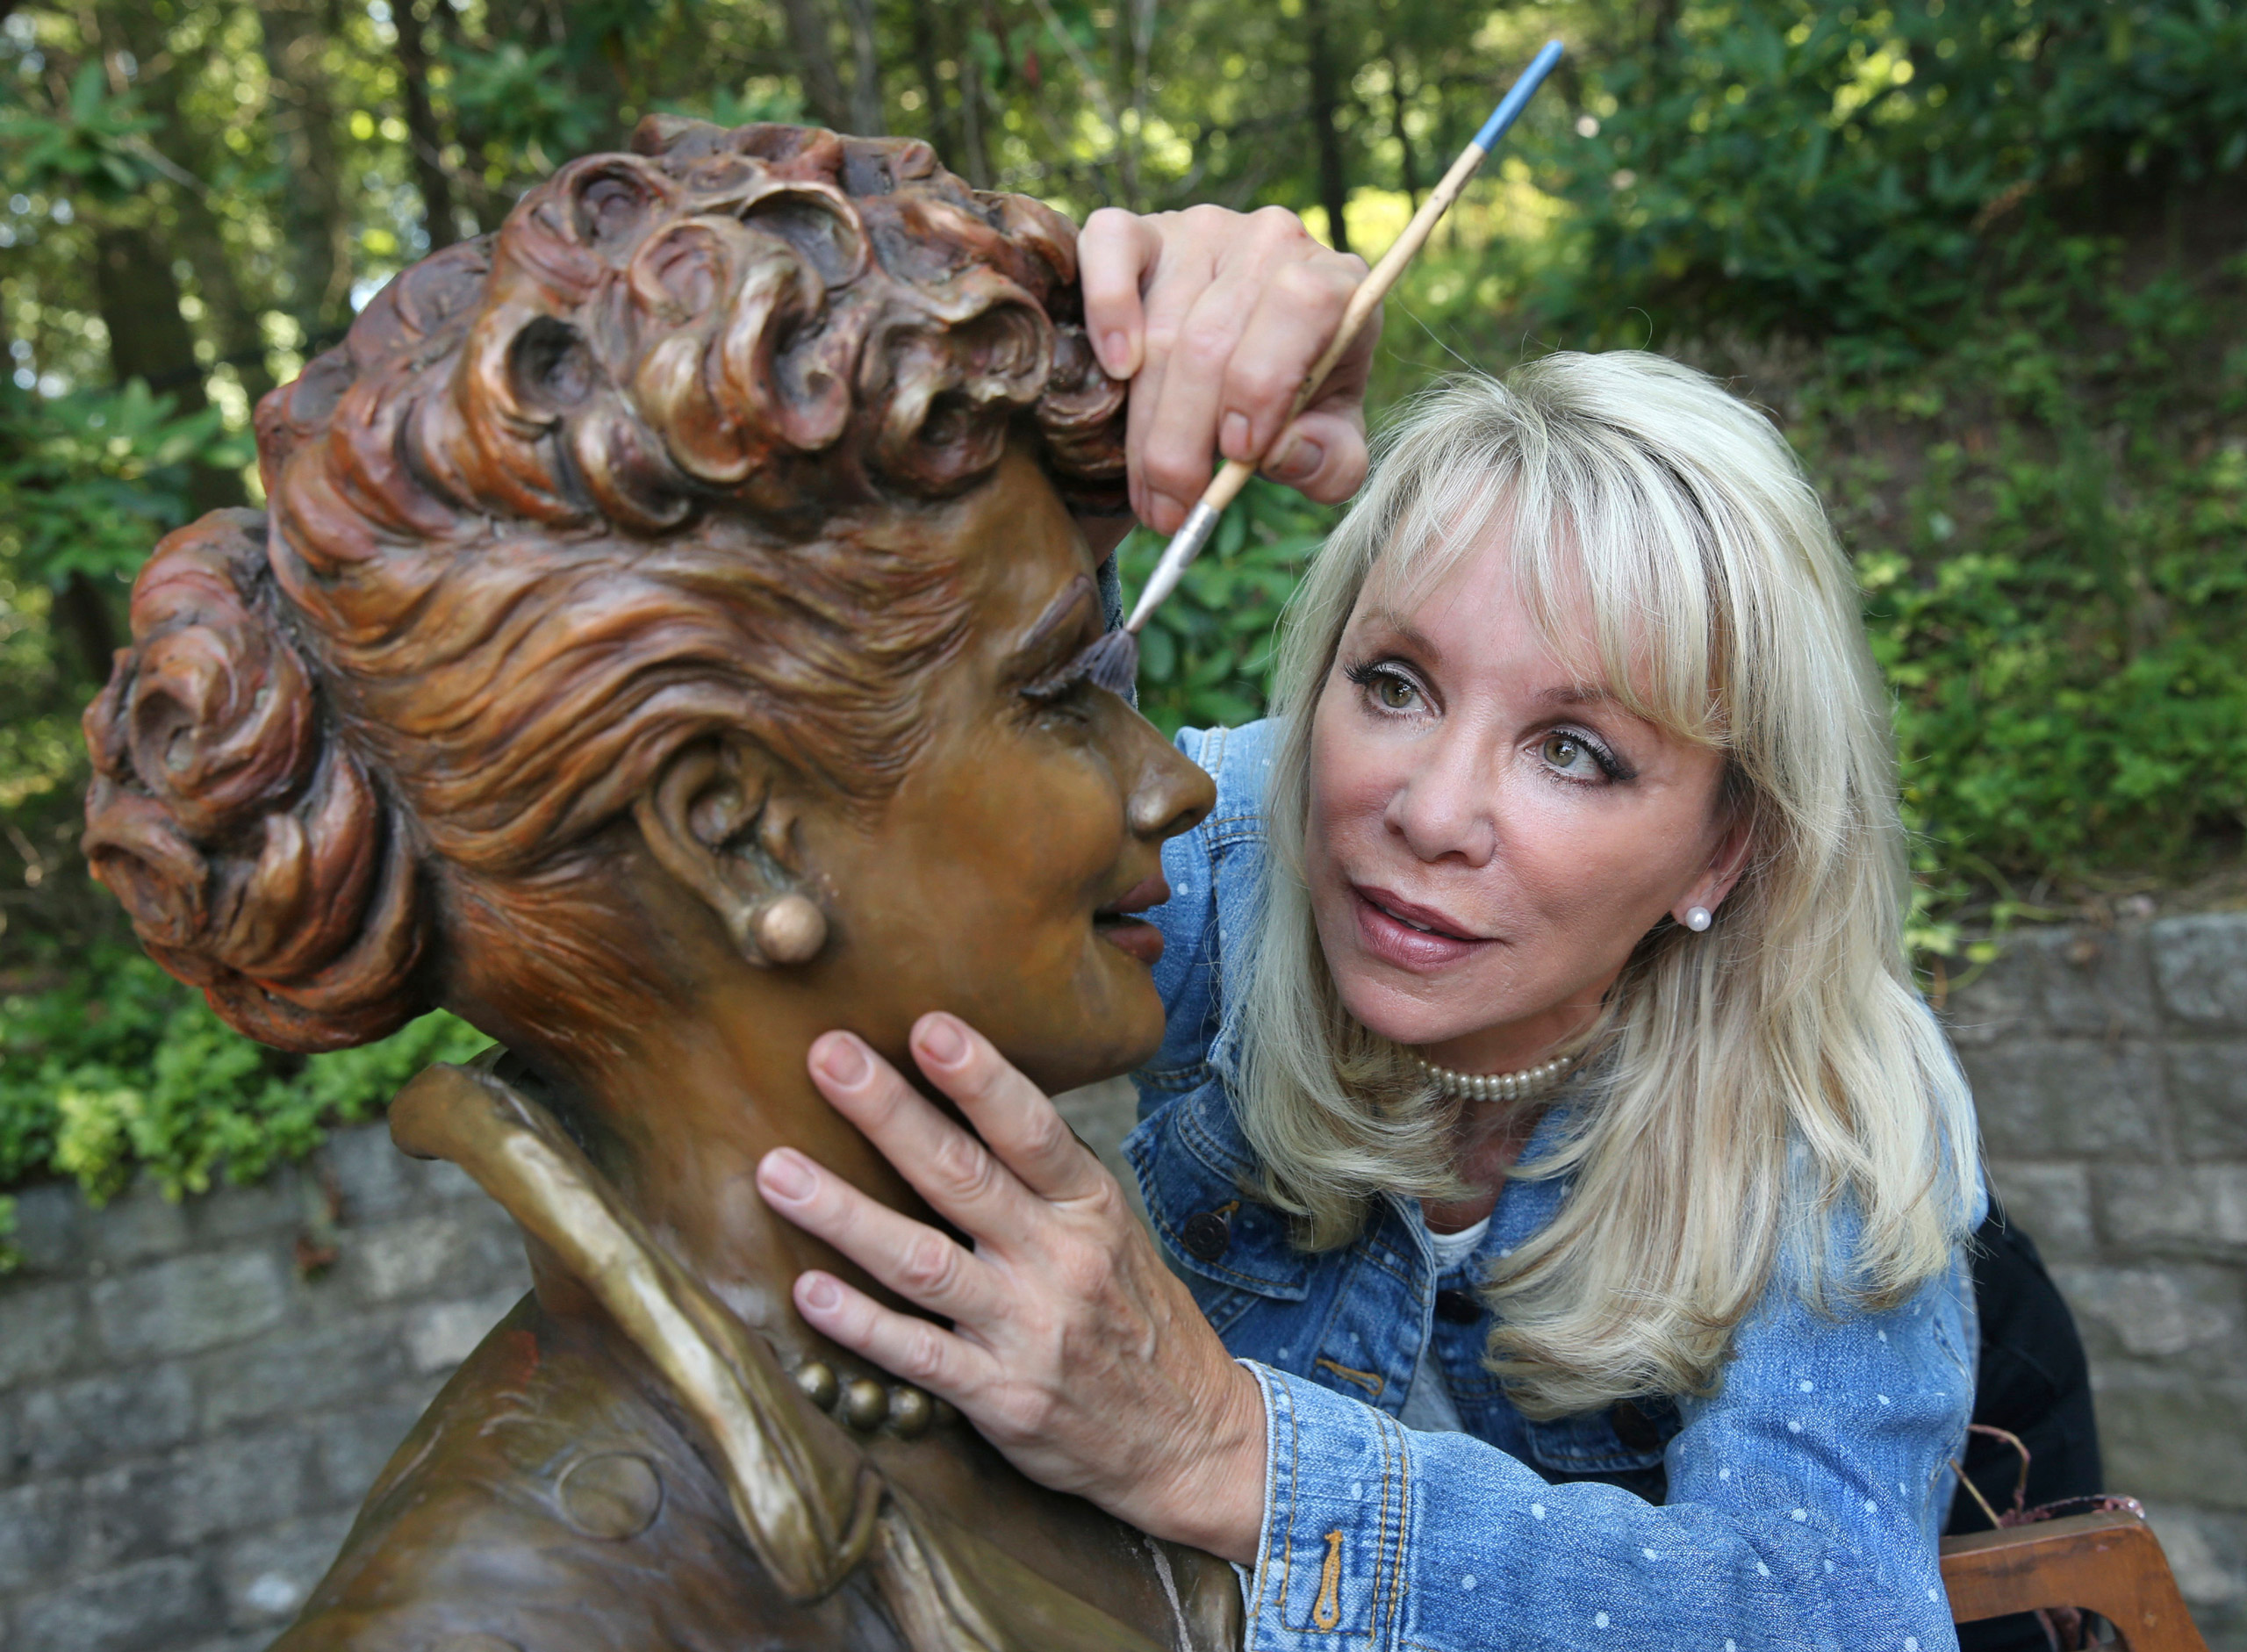 Artist Carolyn Palmer prepares to apply a cold patina to her bronze statue of Lucille Ball in Saddle River, N.J., on July 20, 2016.